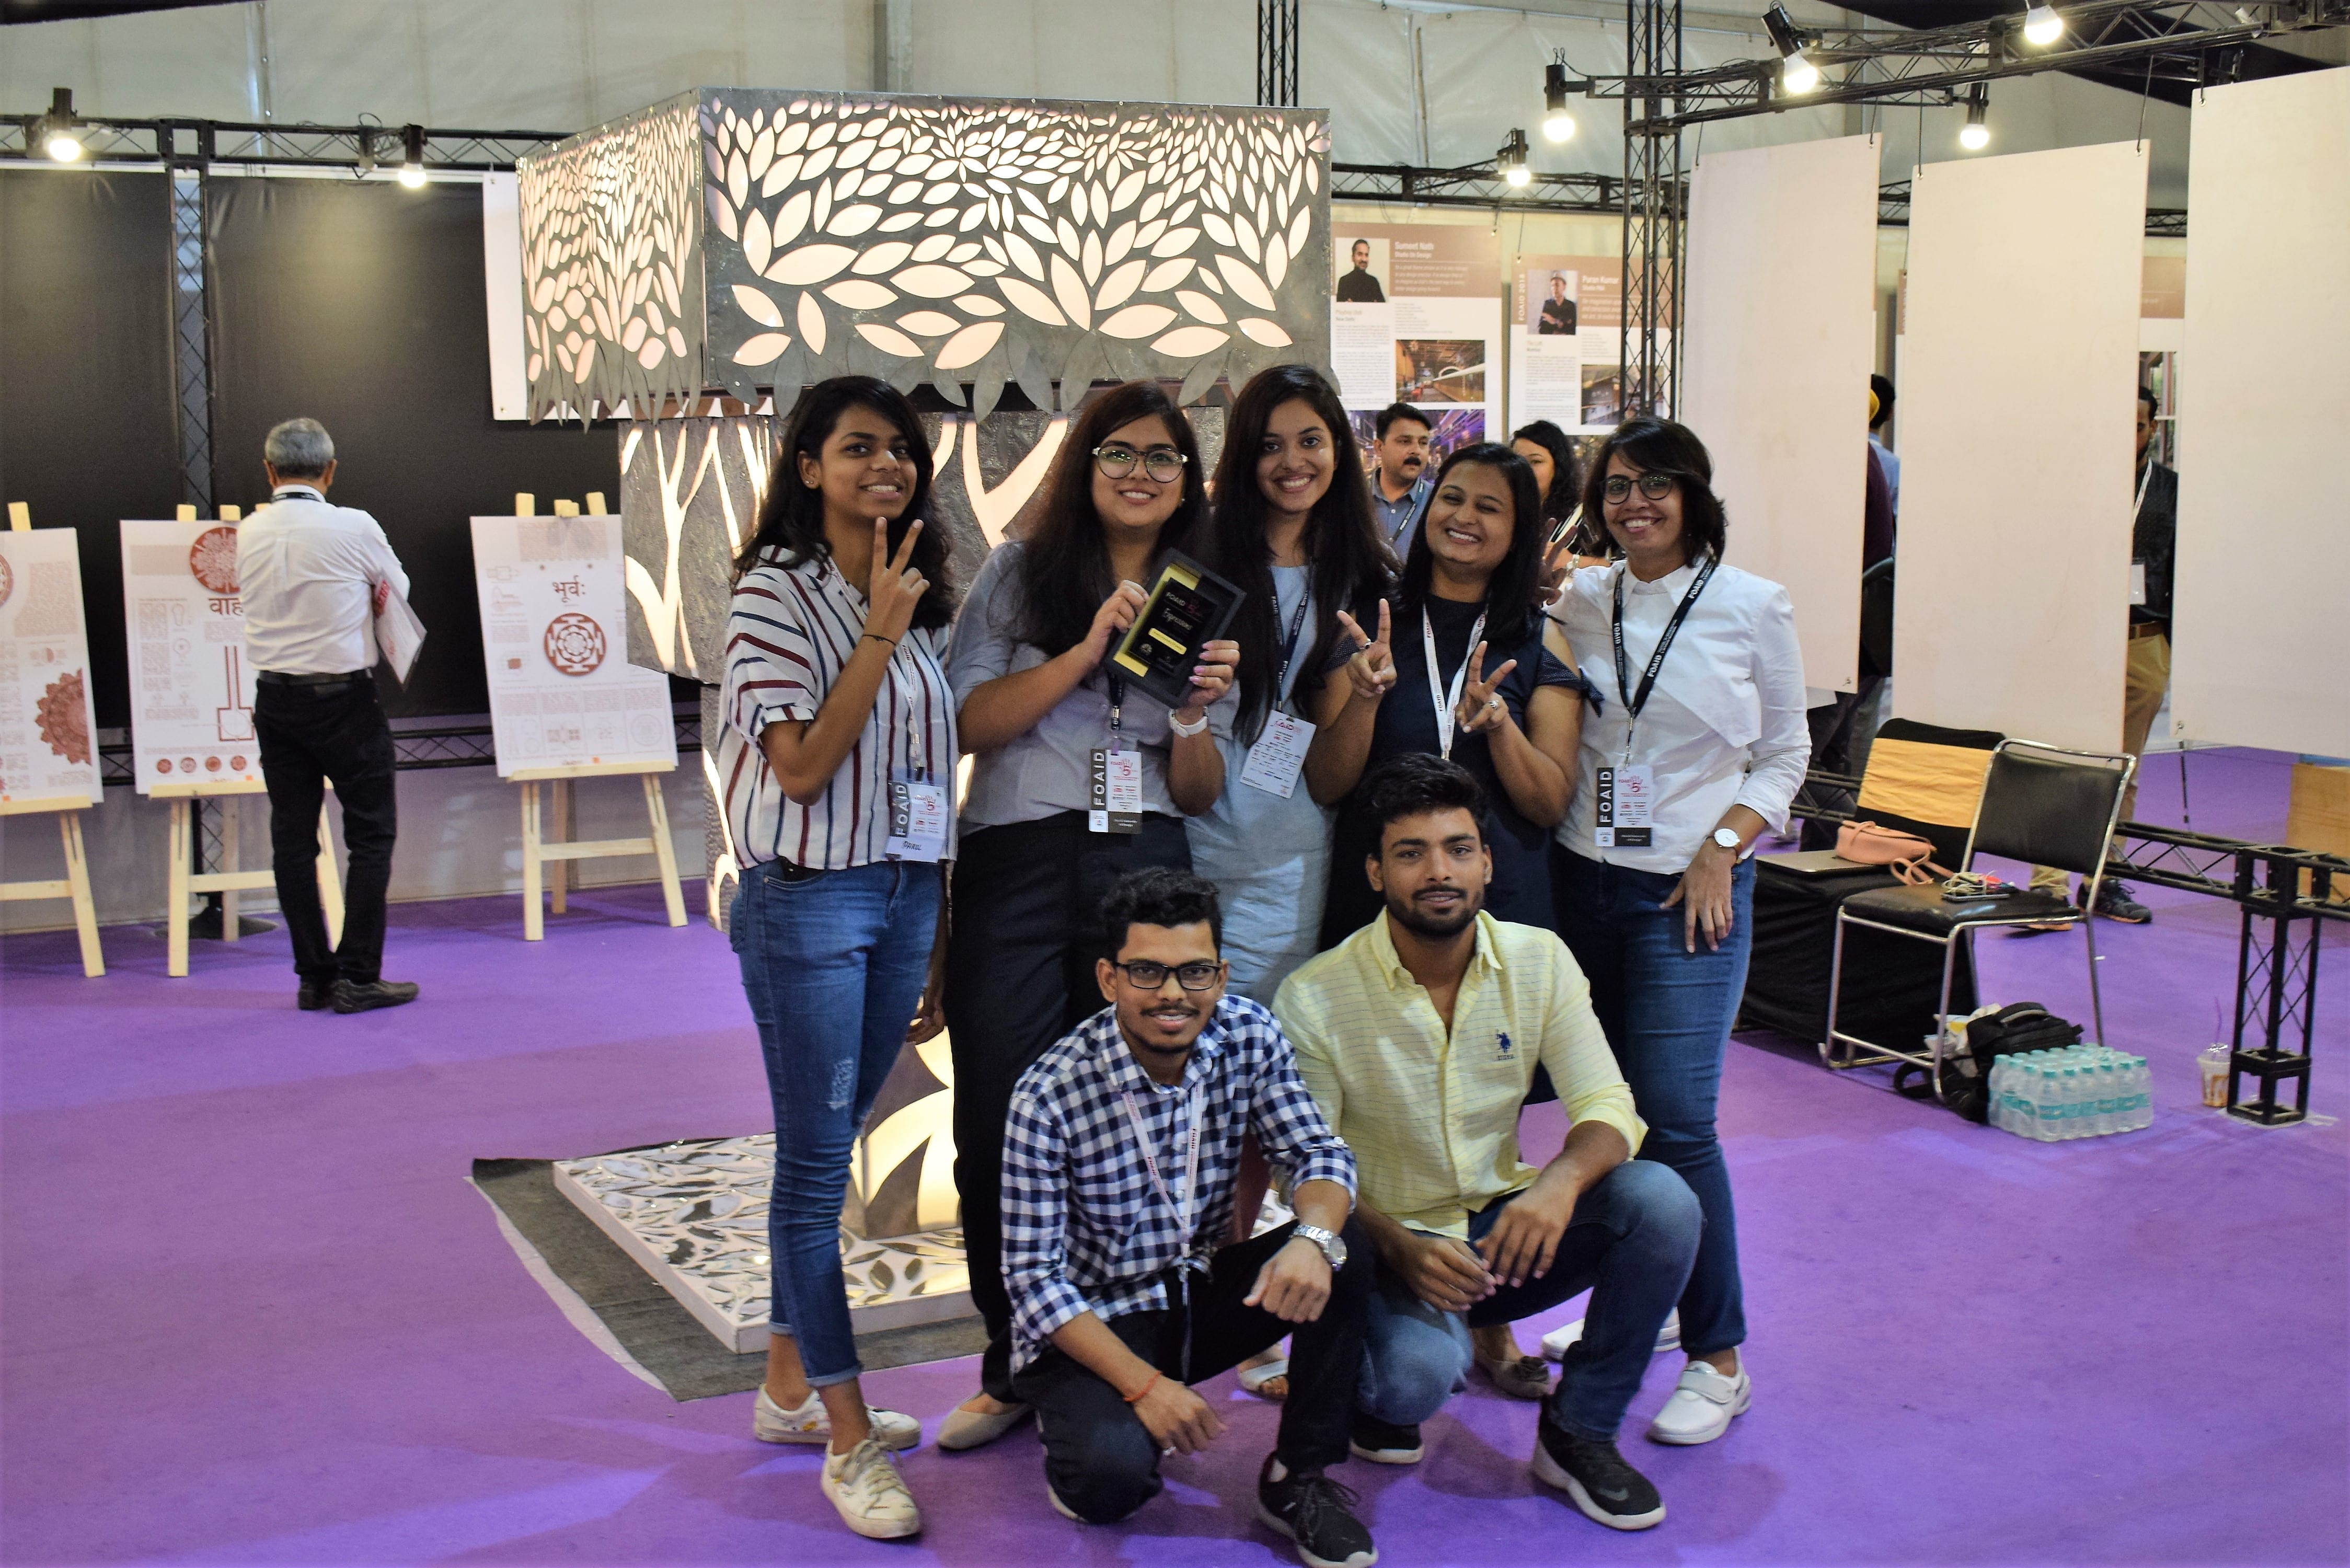 WUD students shine at 'Expressions' art competition at FOAID 2018